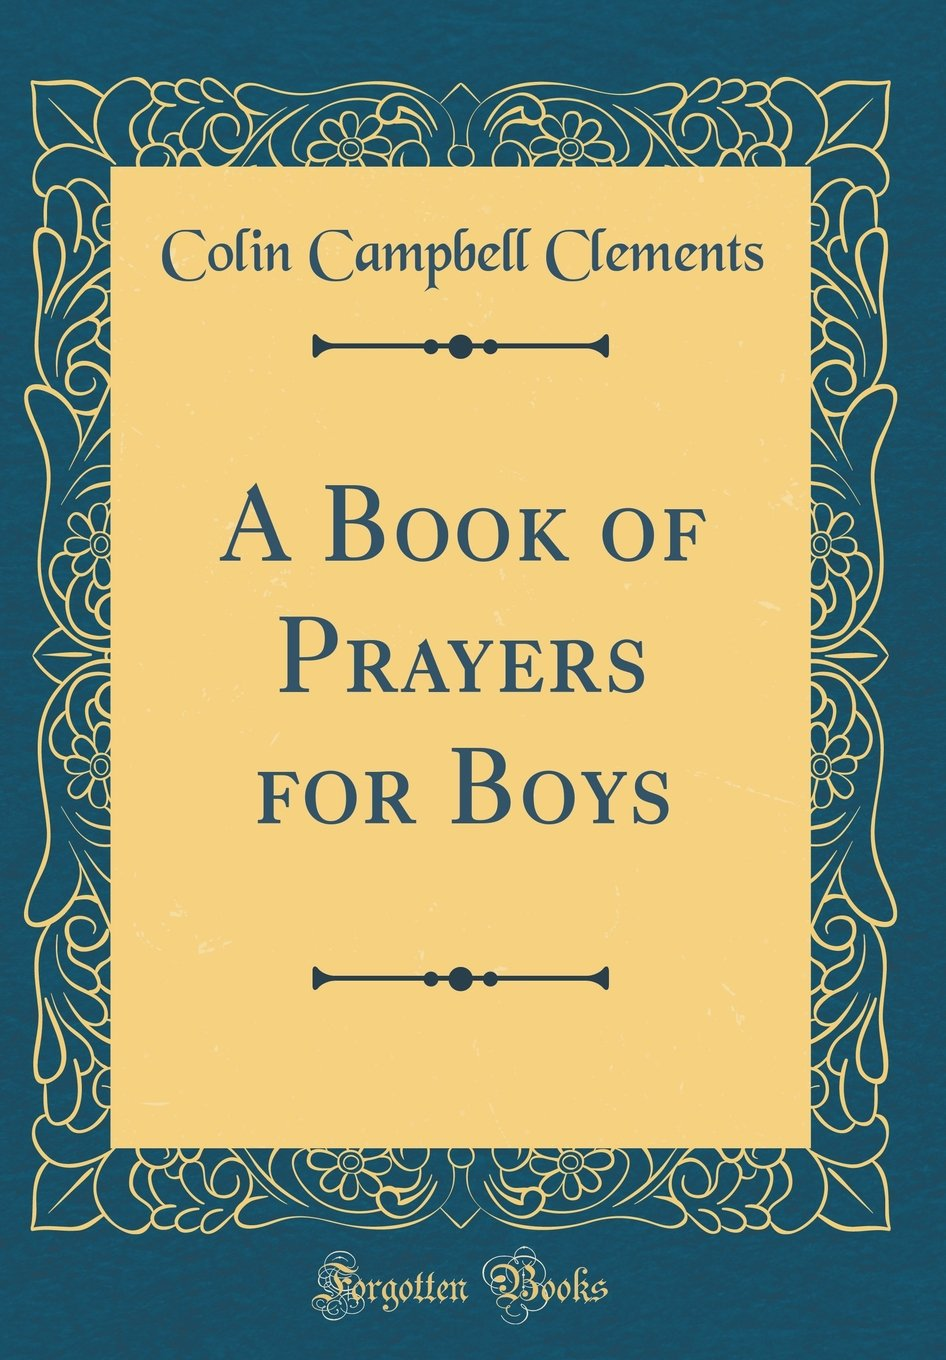 A Book of Prayers for Boys (Classic Reprint): Colin Campbell Clements:  9780332714677: Amazon.com: Books